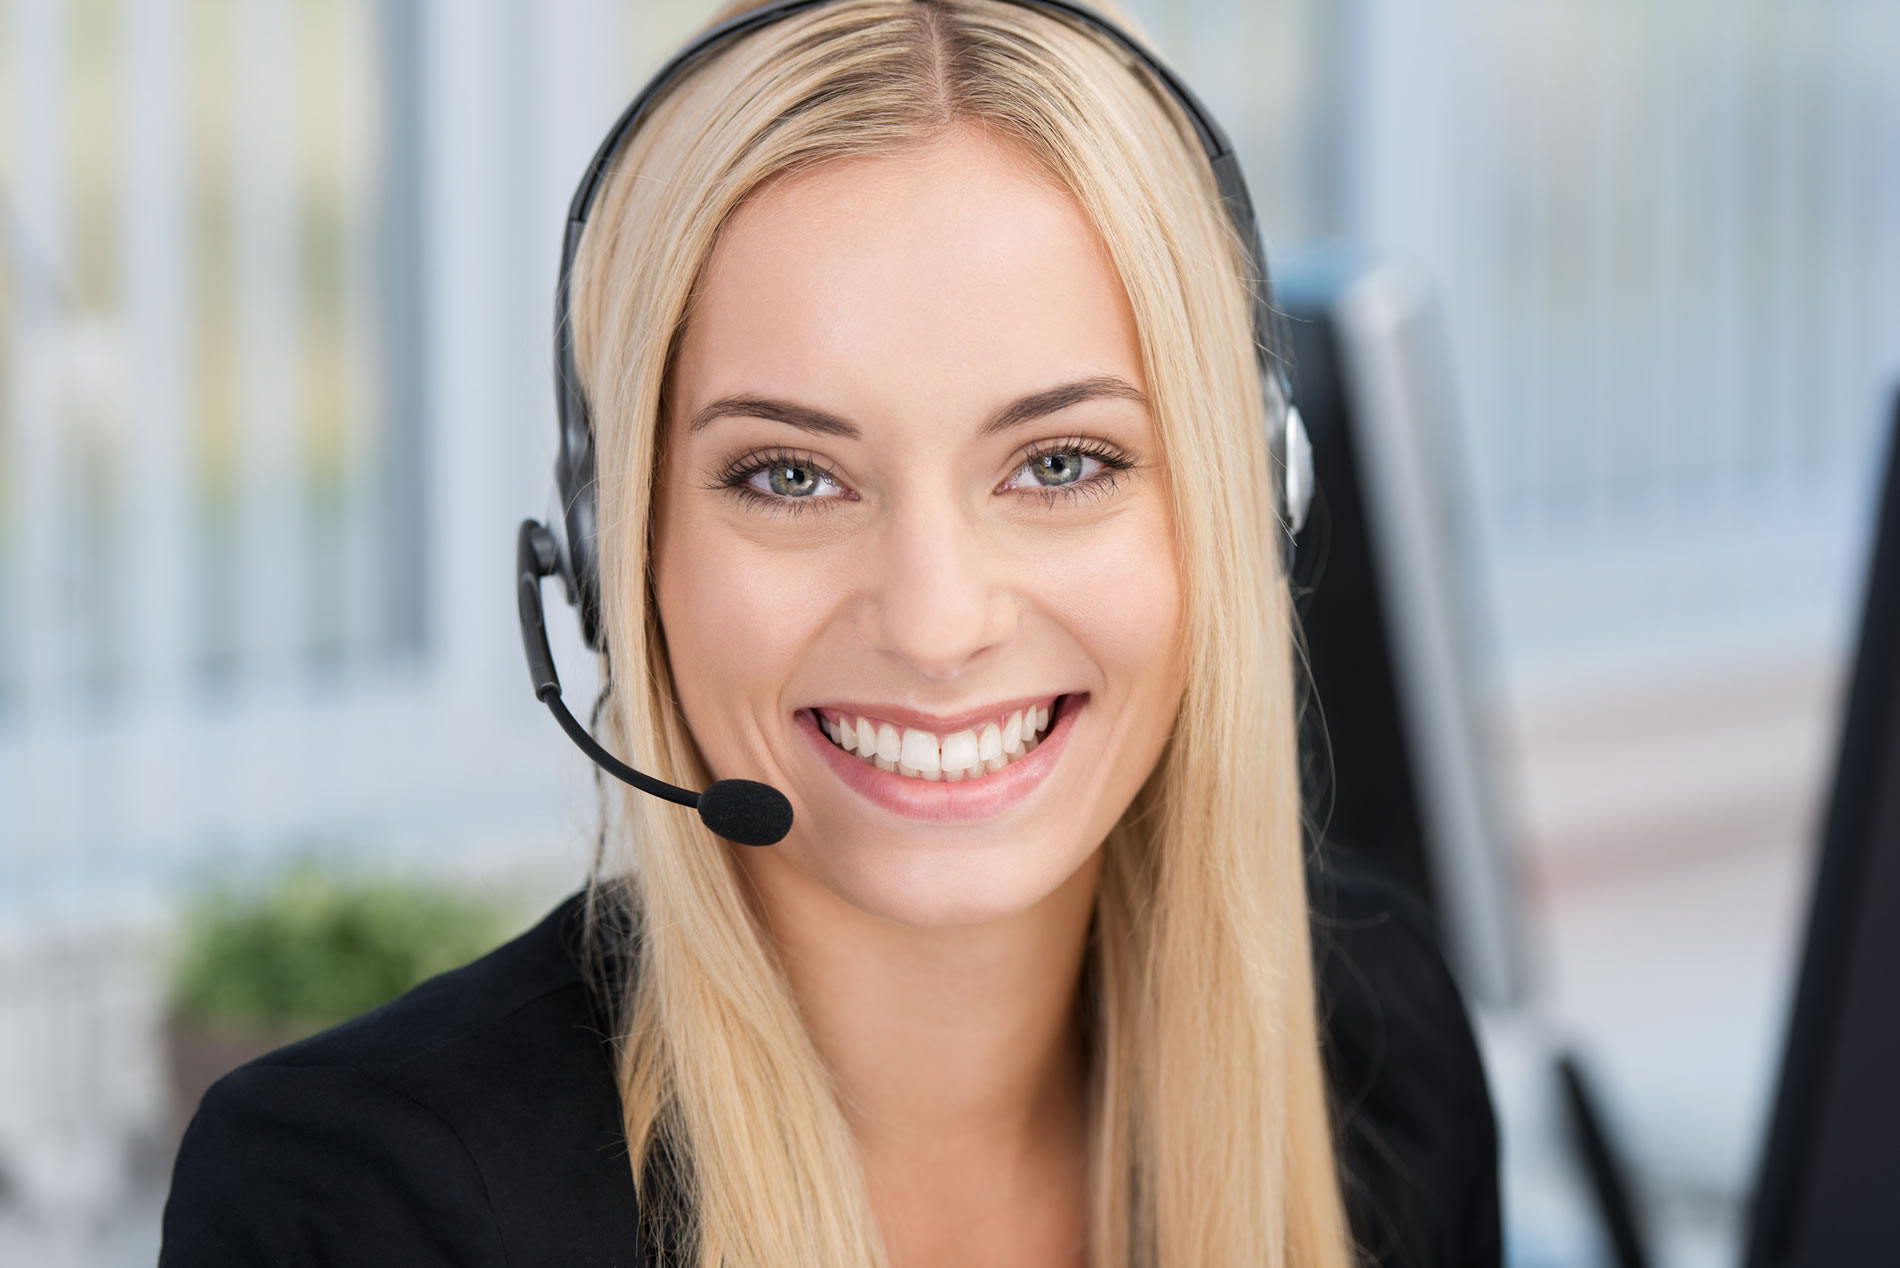 Answering service agent smiling with her headset on before taking a call